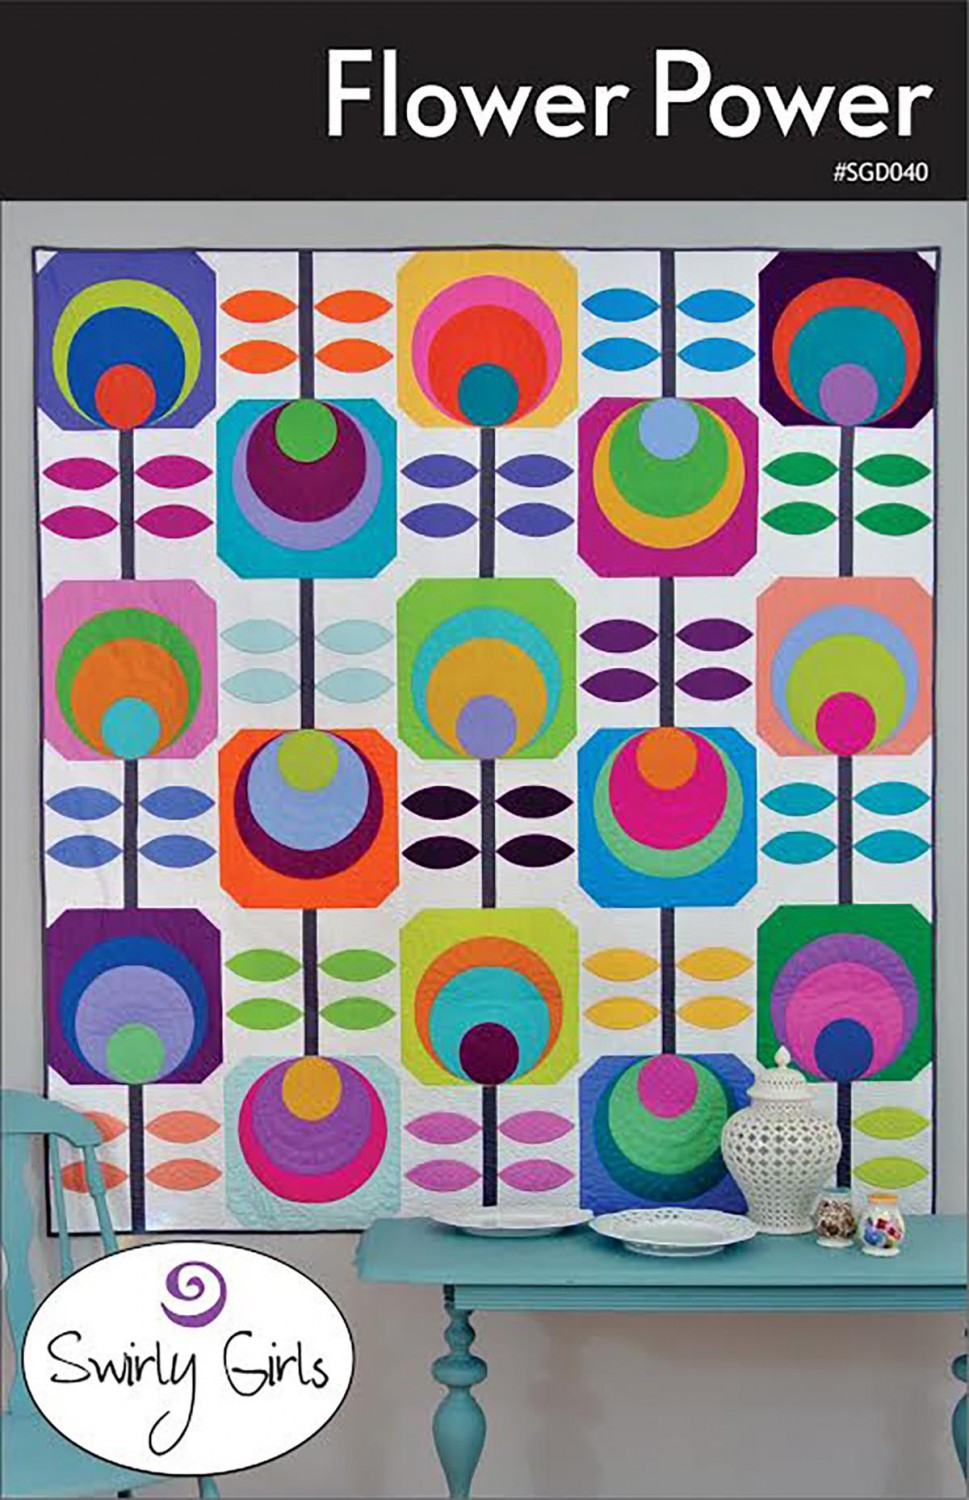 Flower Power Quilt Pattern from Swirly Girls